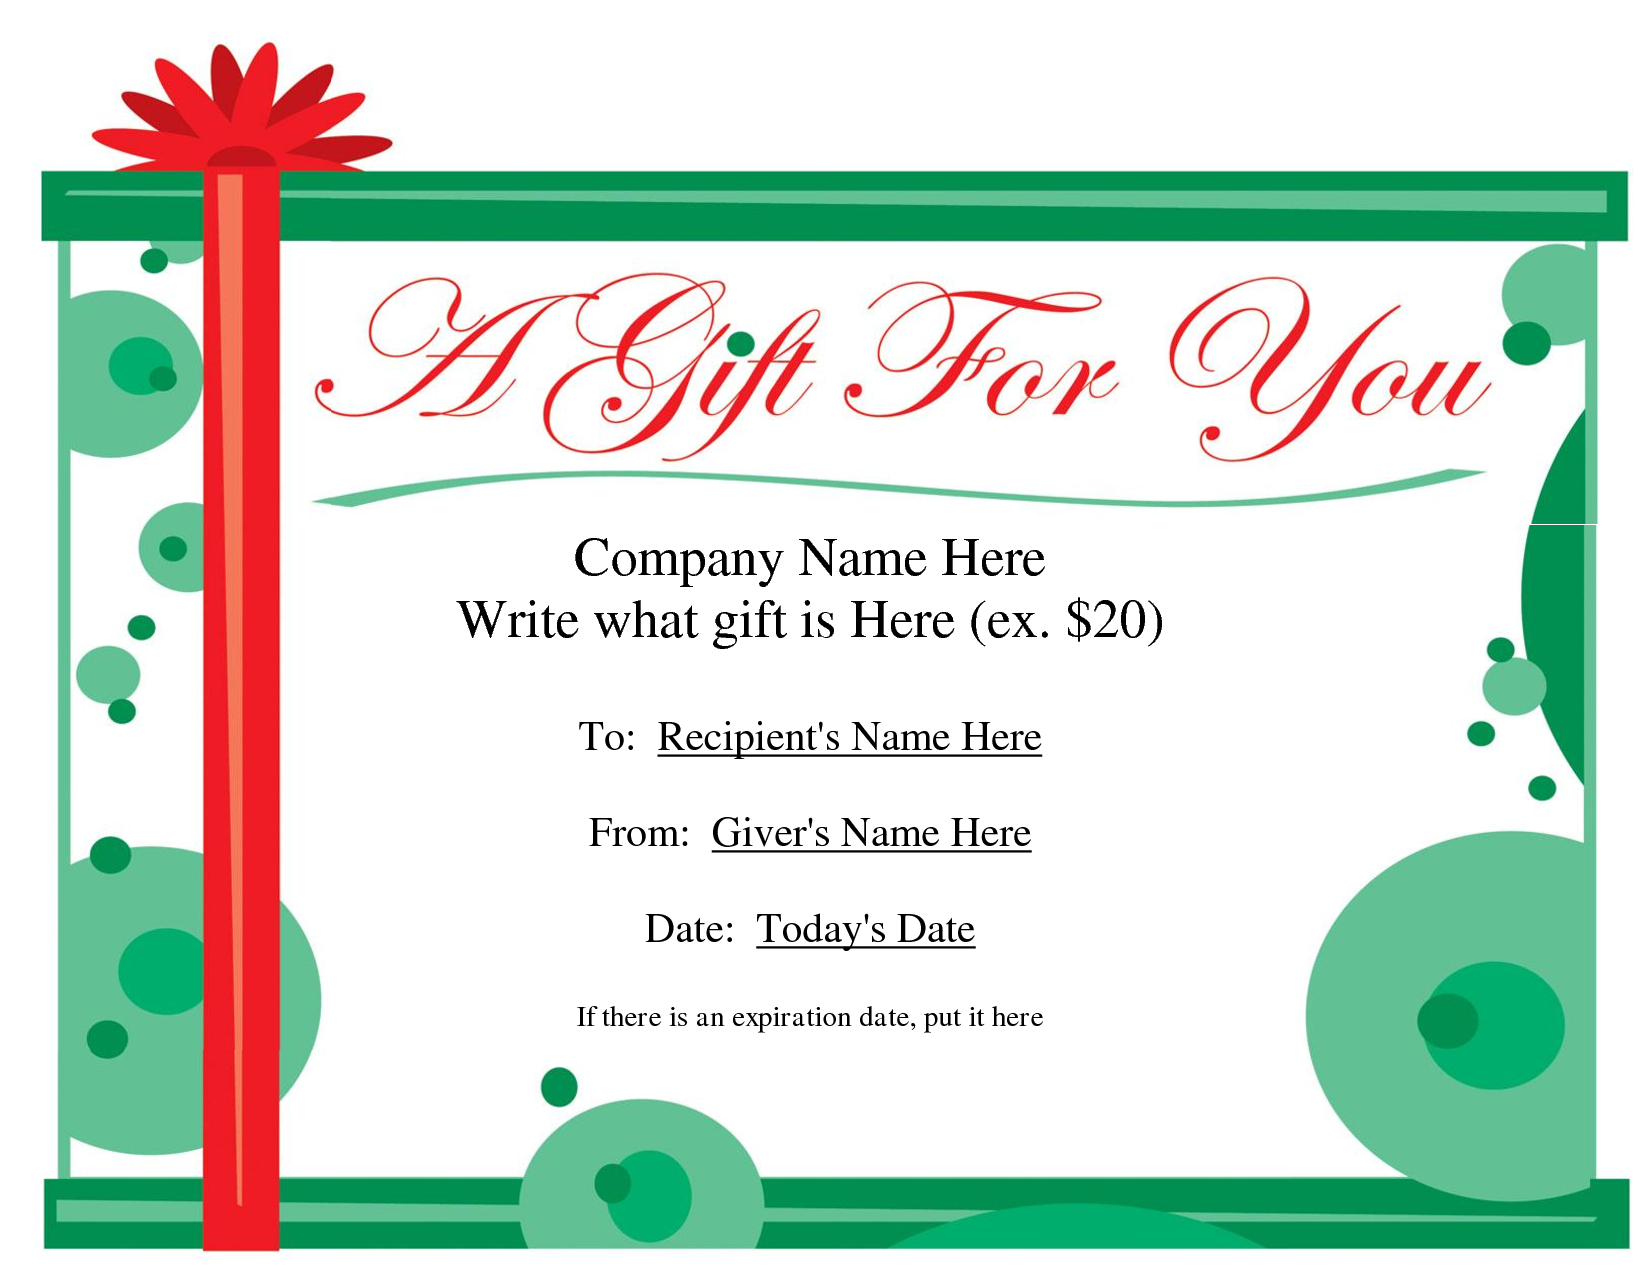 Free Christmas Gift Certificate Templates | Ideas For The House - Free Printable Xmas Gift Certificates